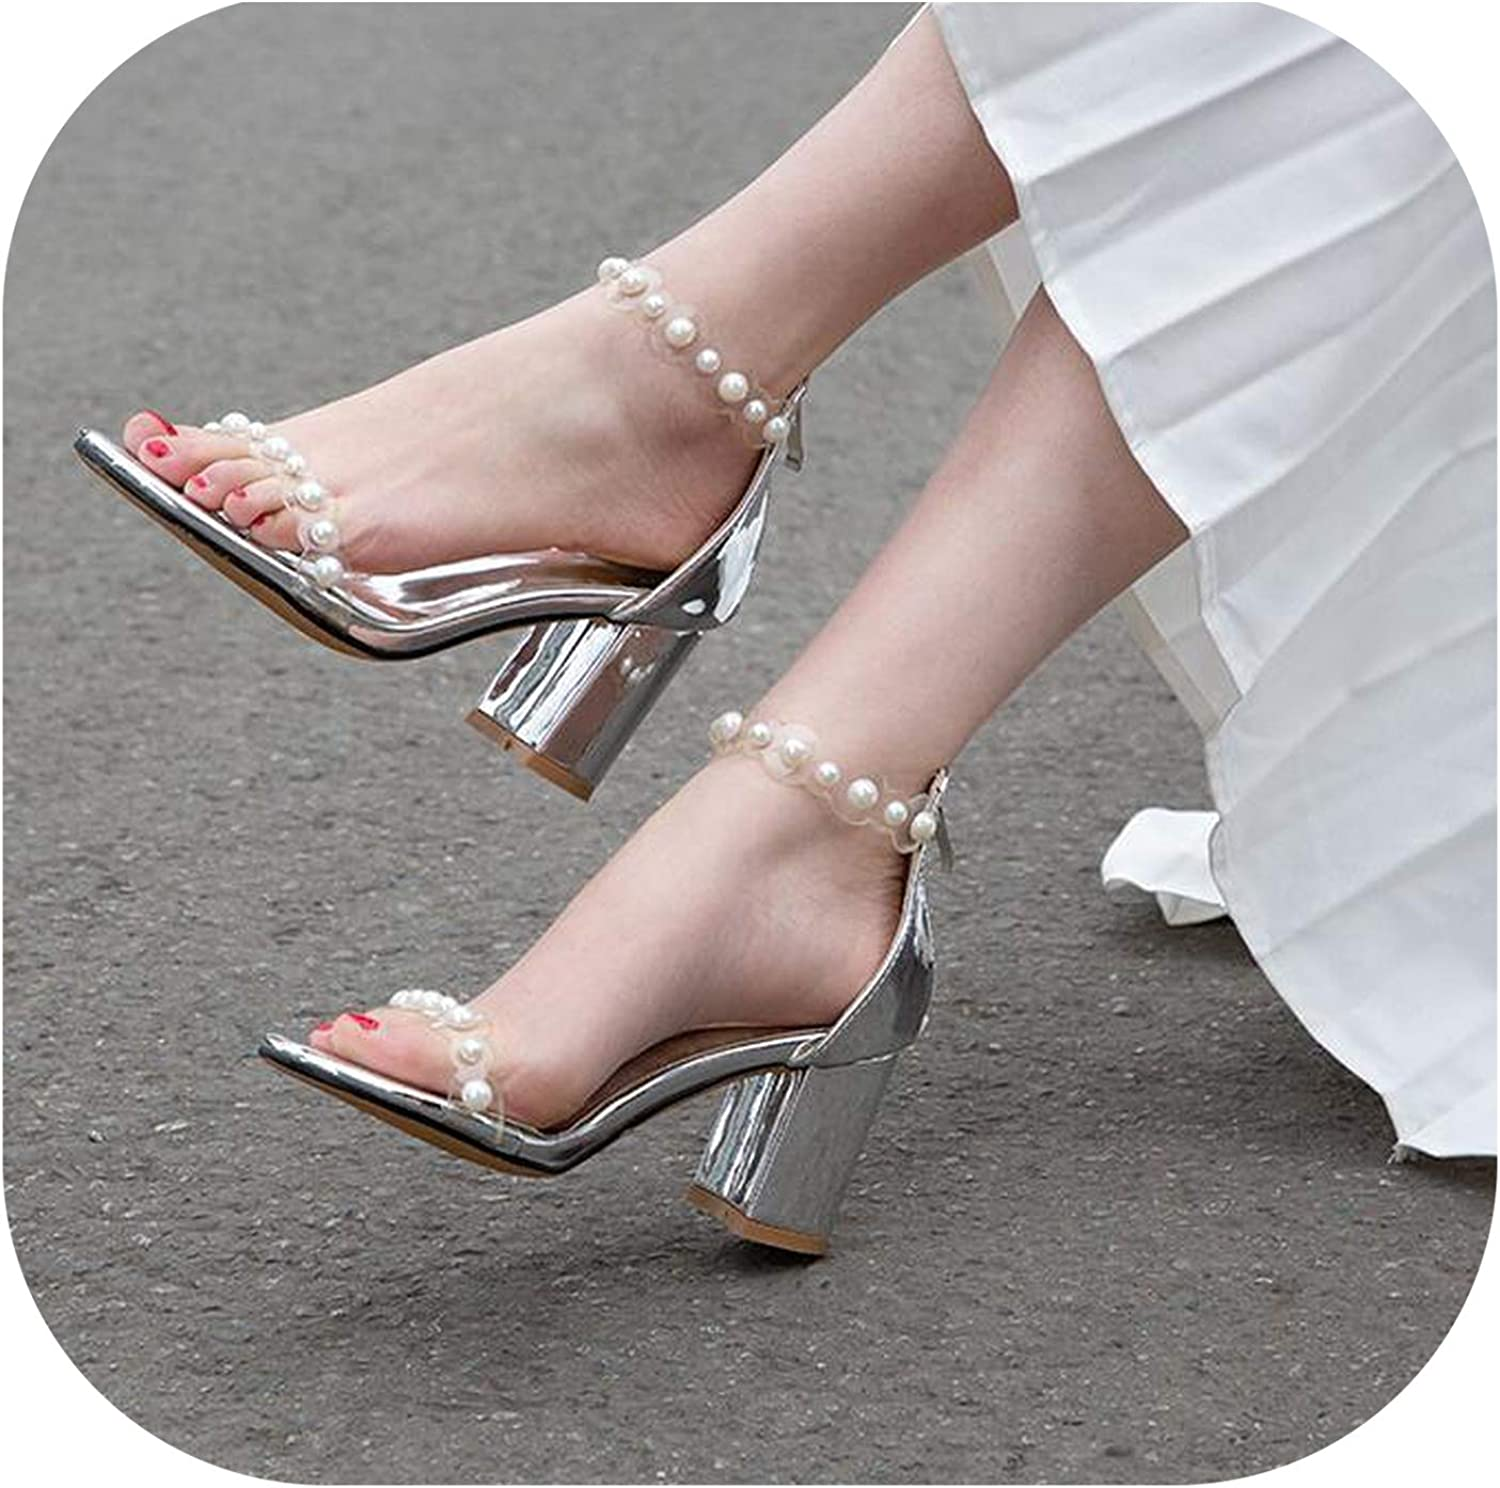 Fish Mouth Sandals for Women with Pearl High HEE Open Toe Rhitone Slipper Ankle High F282